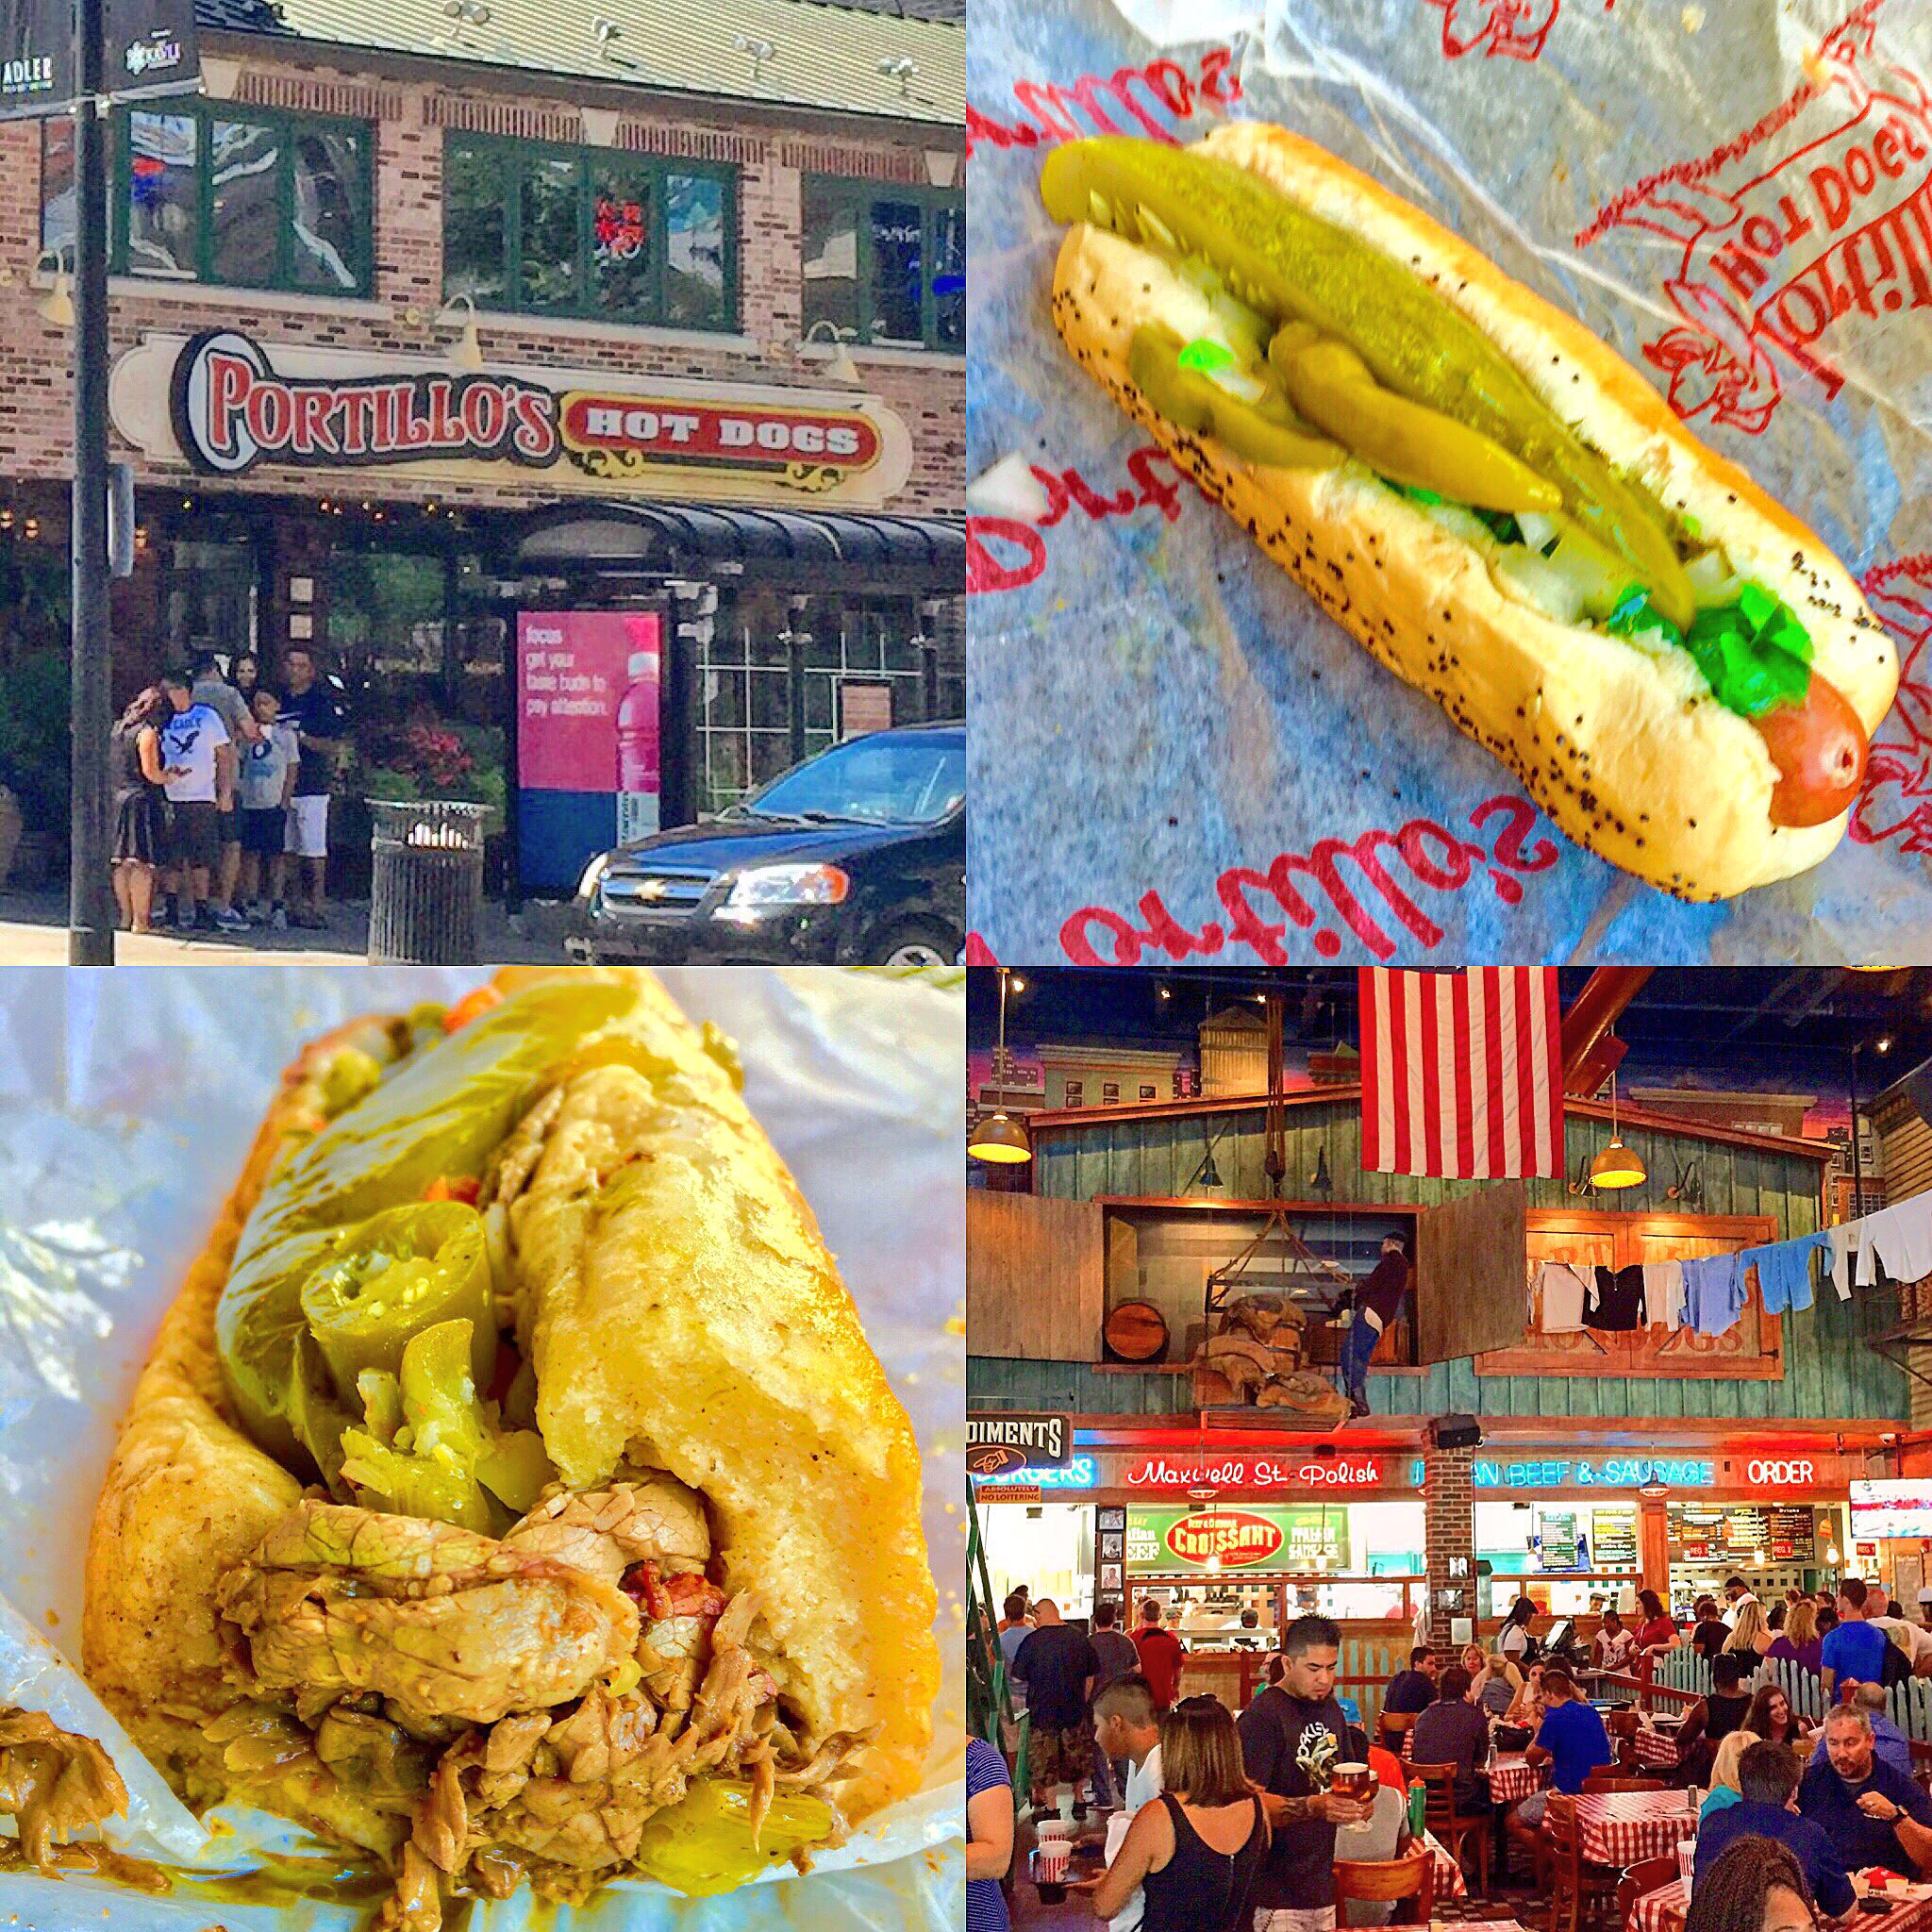 Portillo's: Hot Dogs and Italian Beef!